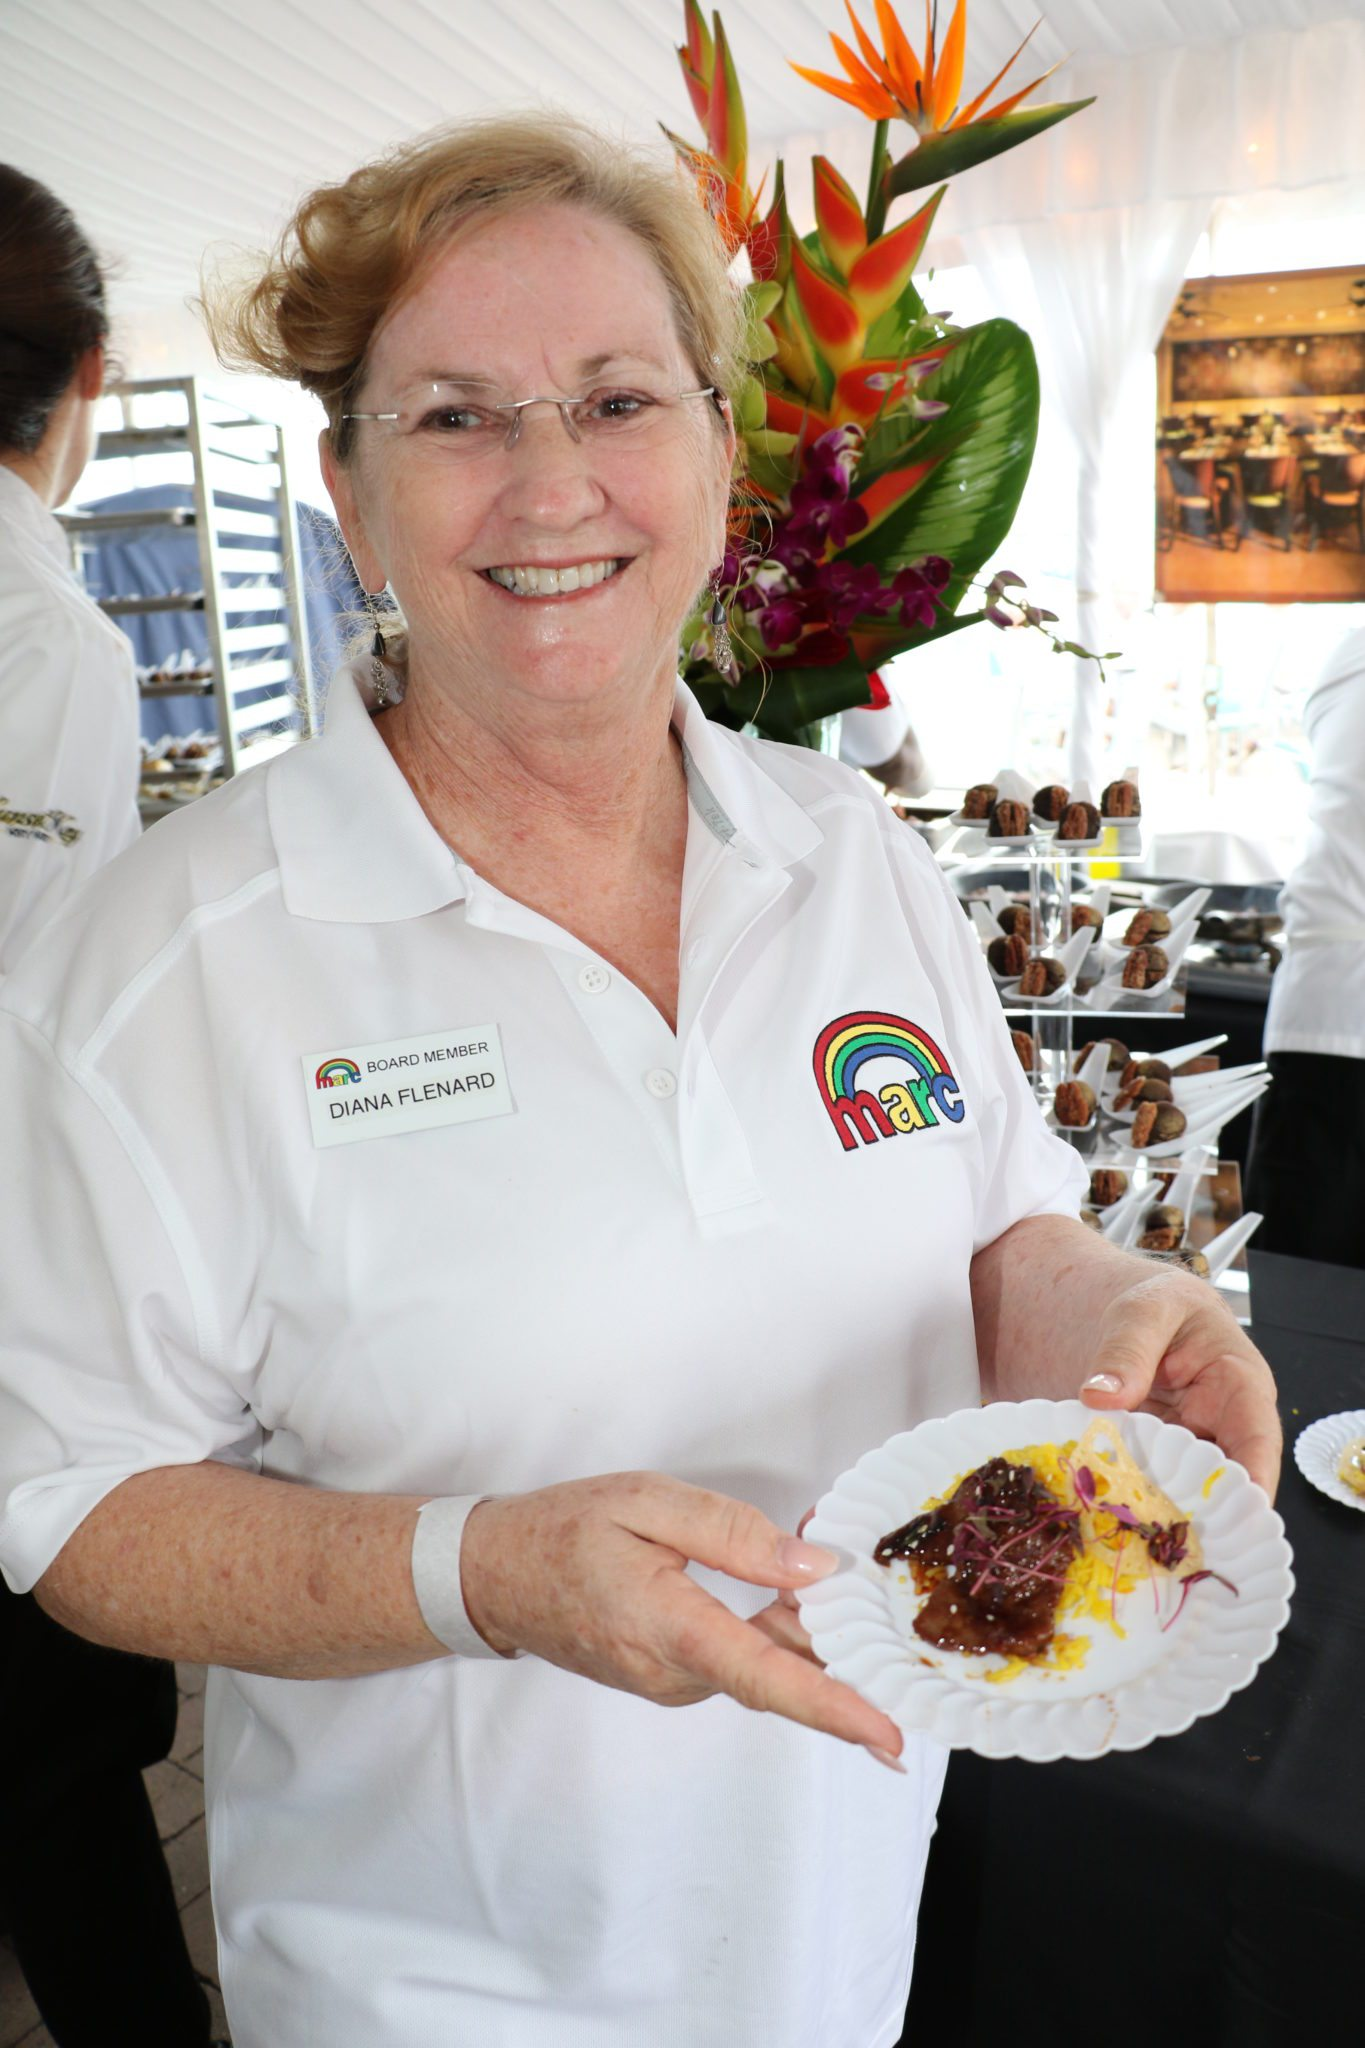 Diana Flenard, MARC House's Executive Director, shows off a tasty creation from Firefly at Sunday's event.